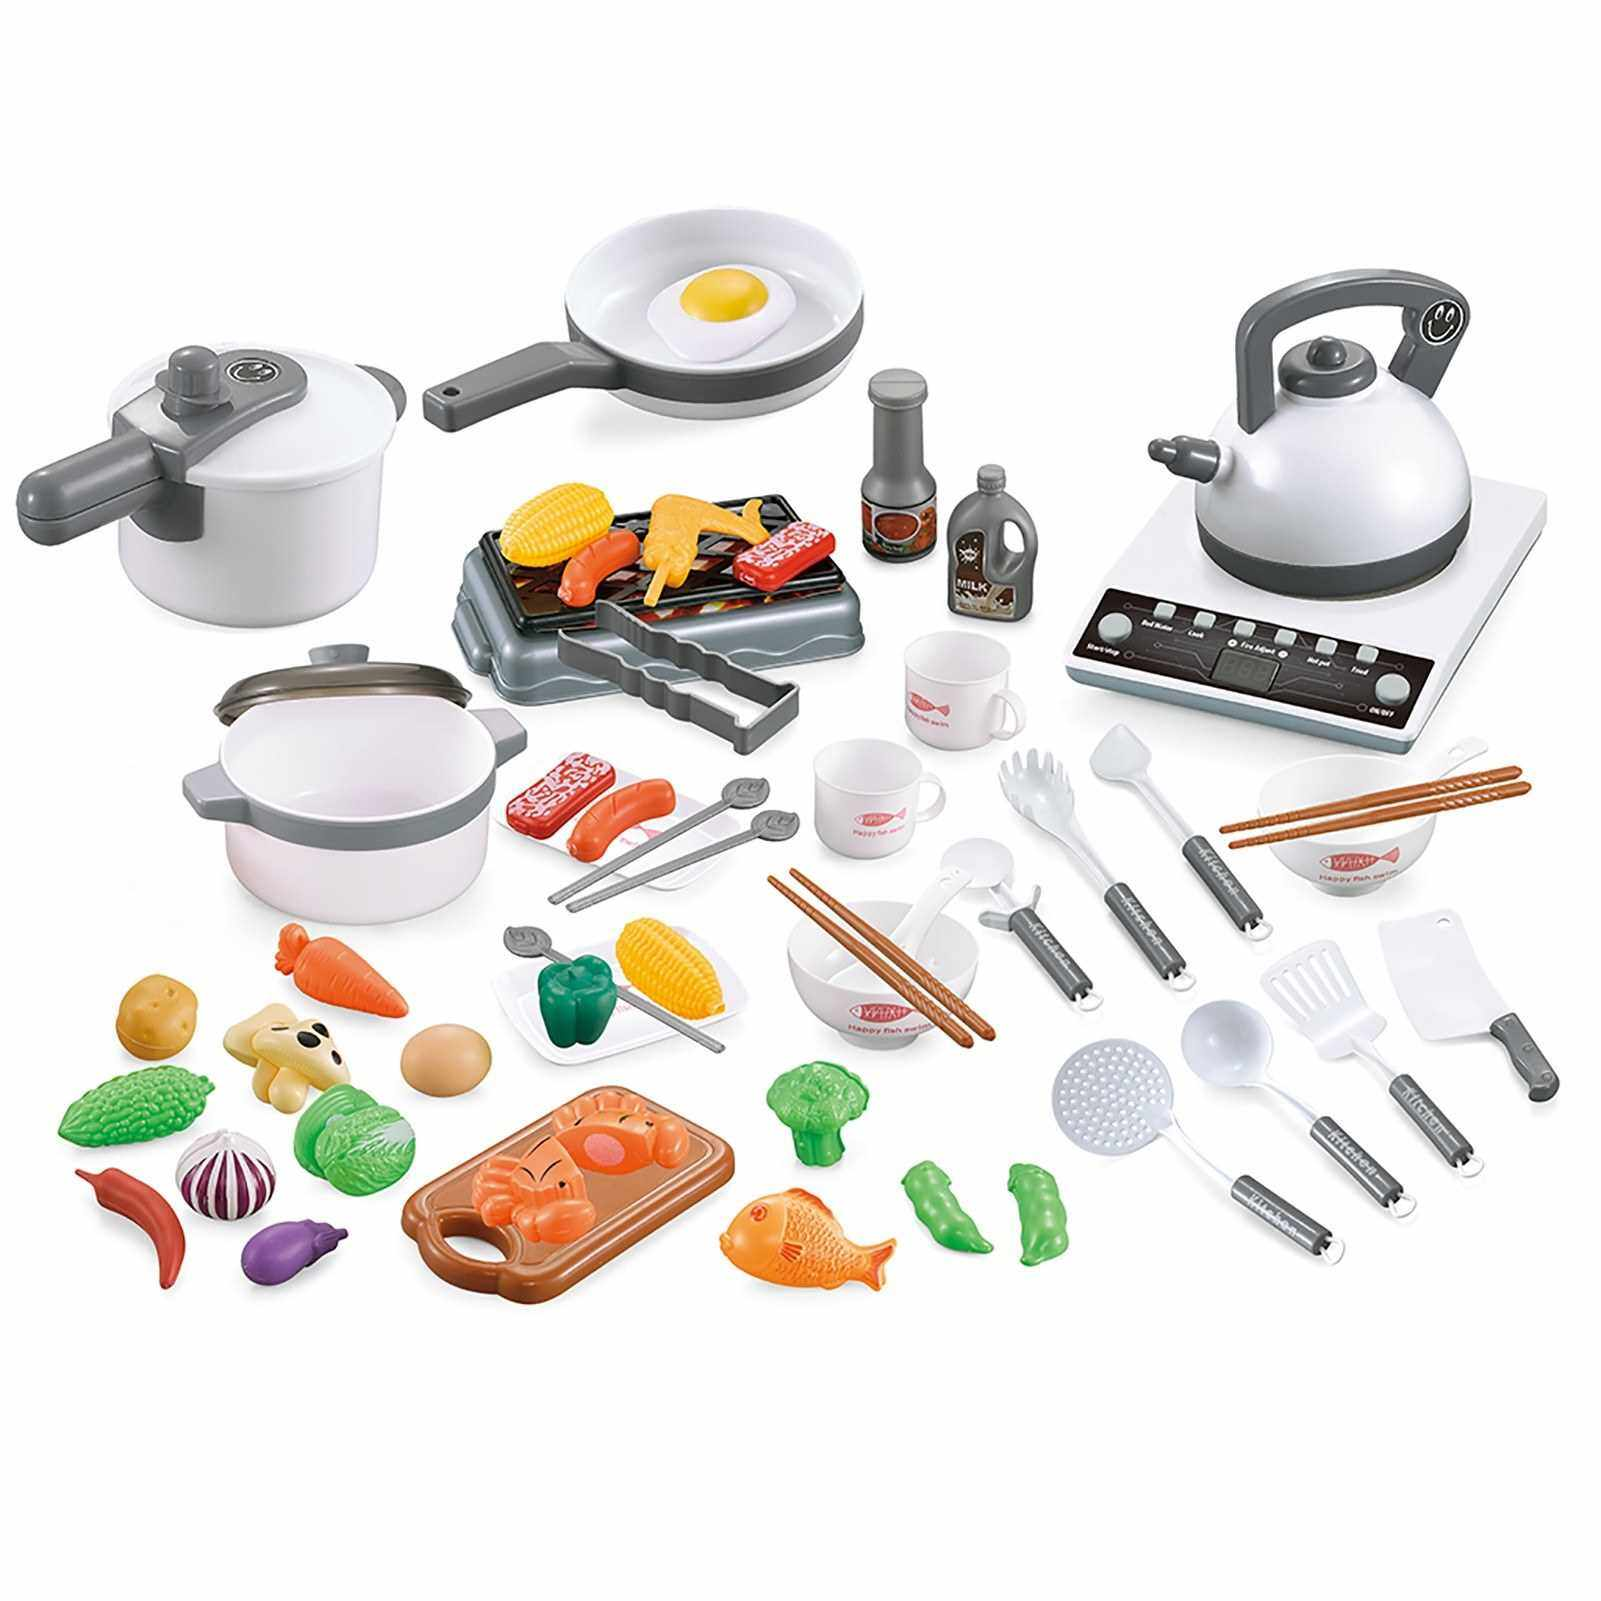 Best Selling 52PCS Kitchen Play Toy Kids Pretend Playset with Cookware Pots and Pans Set Play Food Fruits Cooking Utensils Toy Cutlery Early Educational Toys for Girls Boys Kids (White)